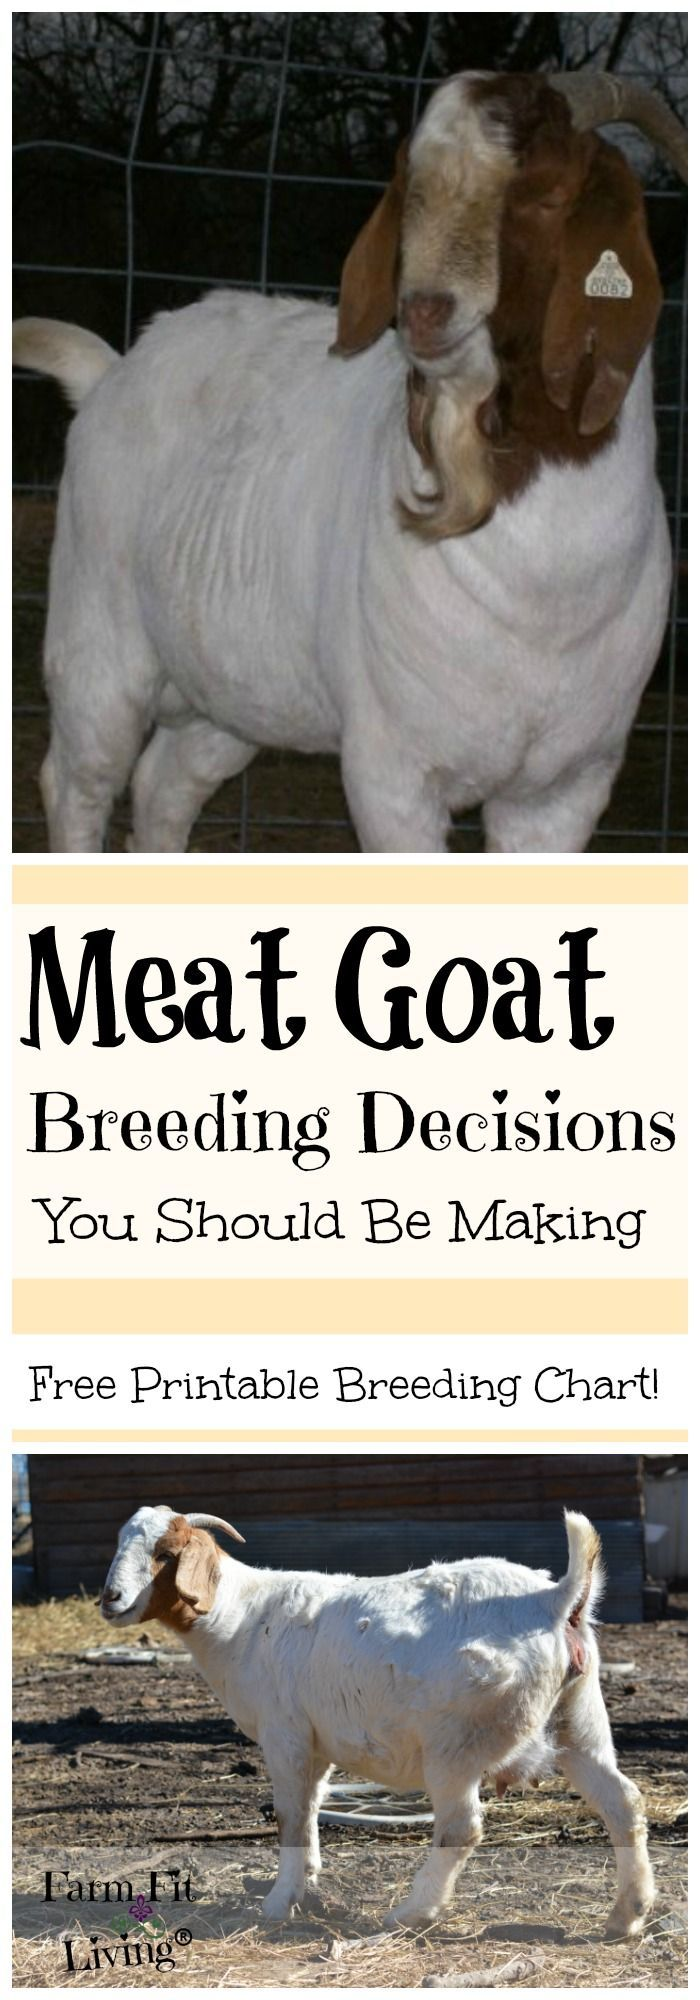 Meat Goat Breeding Decisions You Should Be Making Every Year | Raising Meat Goats | Homesteading